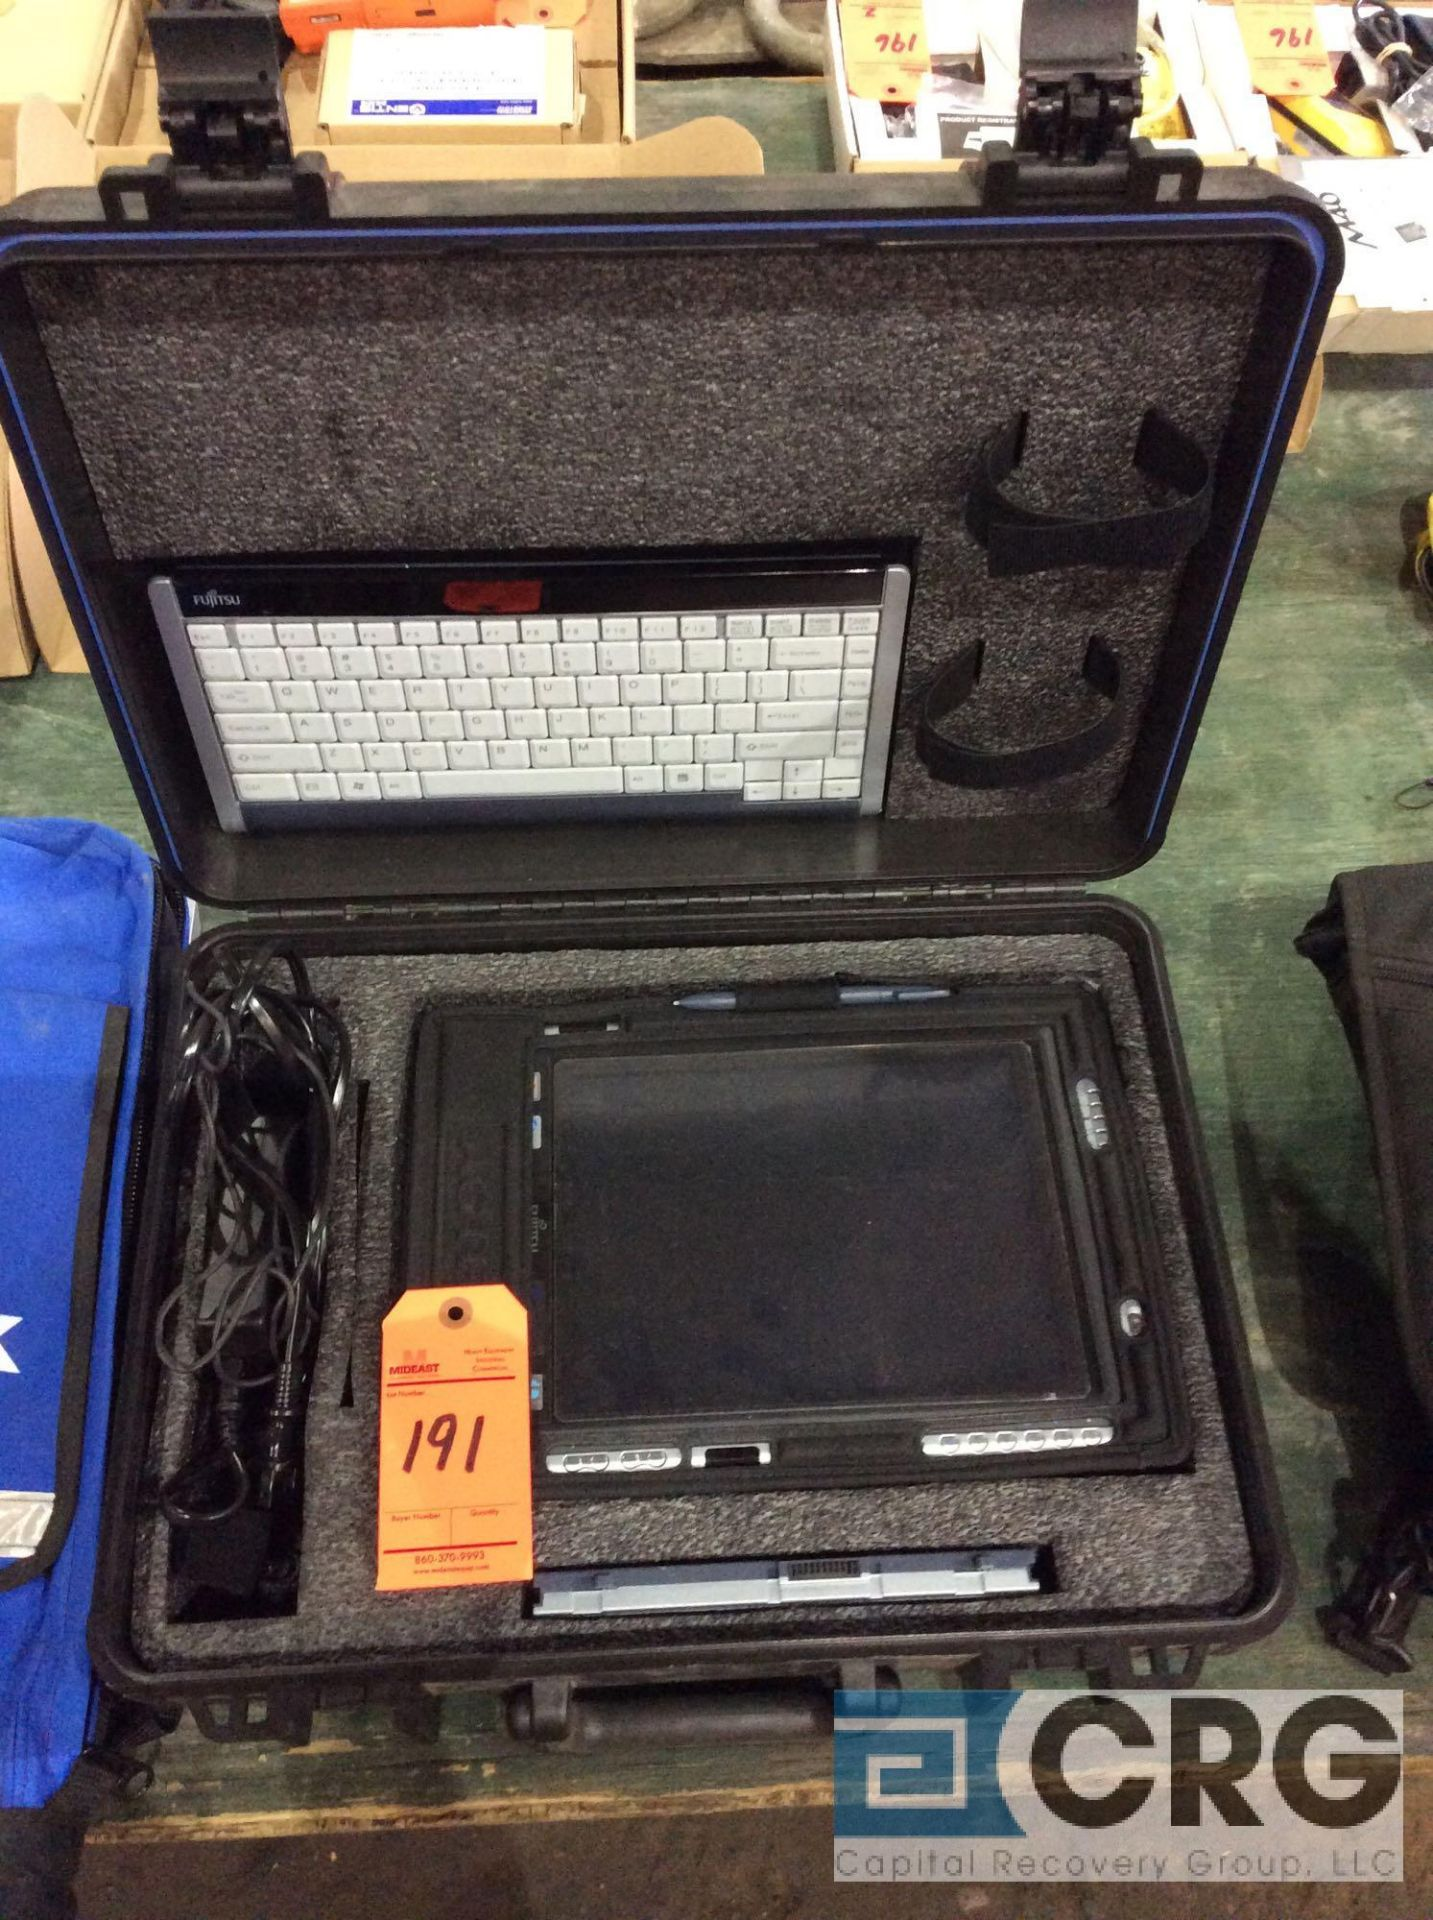 Lot 191 - Agtek portable computer system with spare Otter Box case, GPS sensor, backpack with link, and